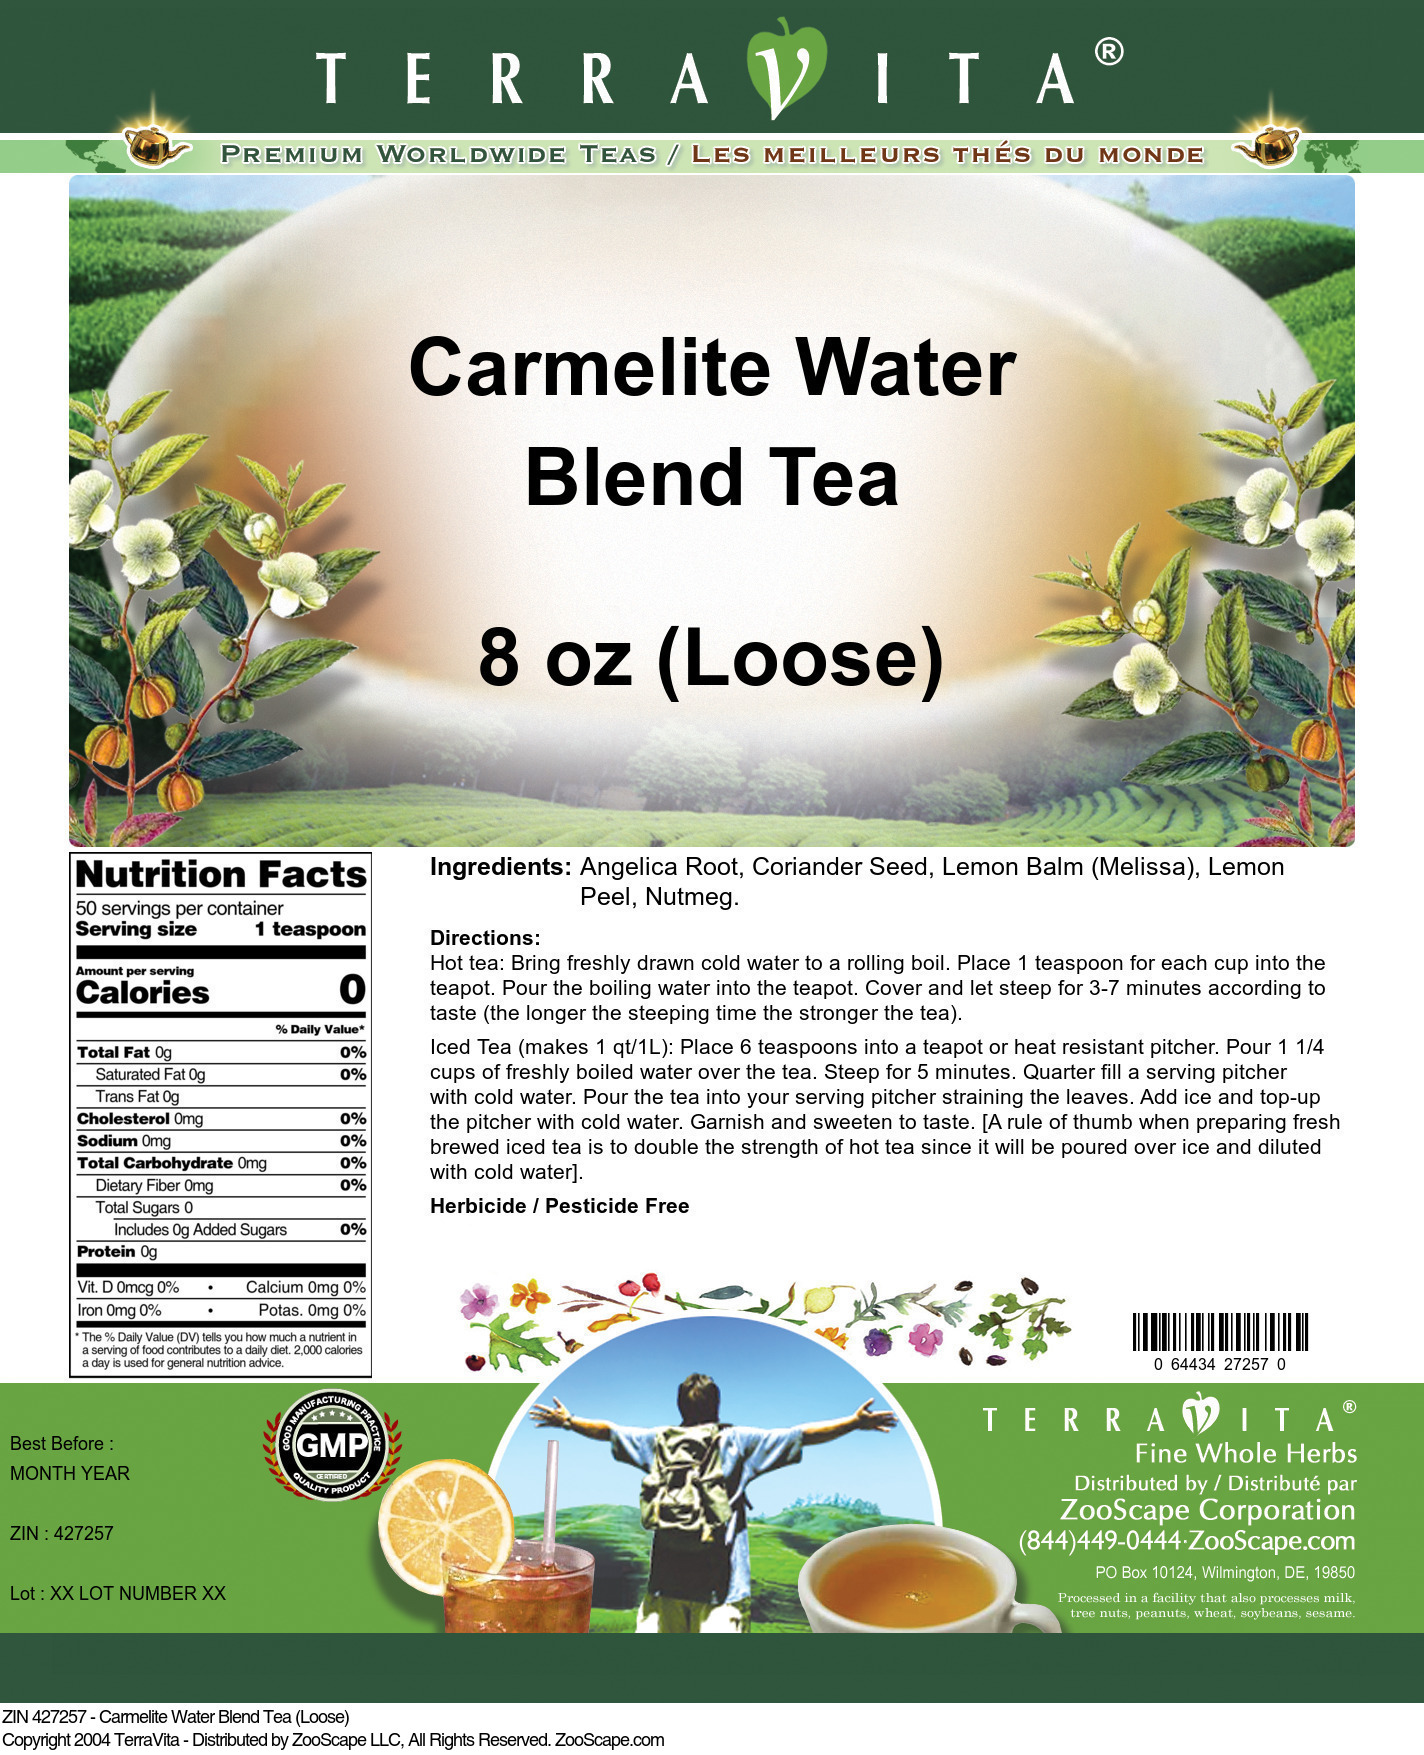 Carmelite Water Blend Tea (Loose) - Label